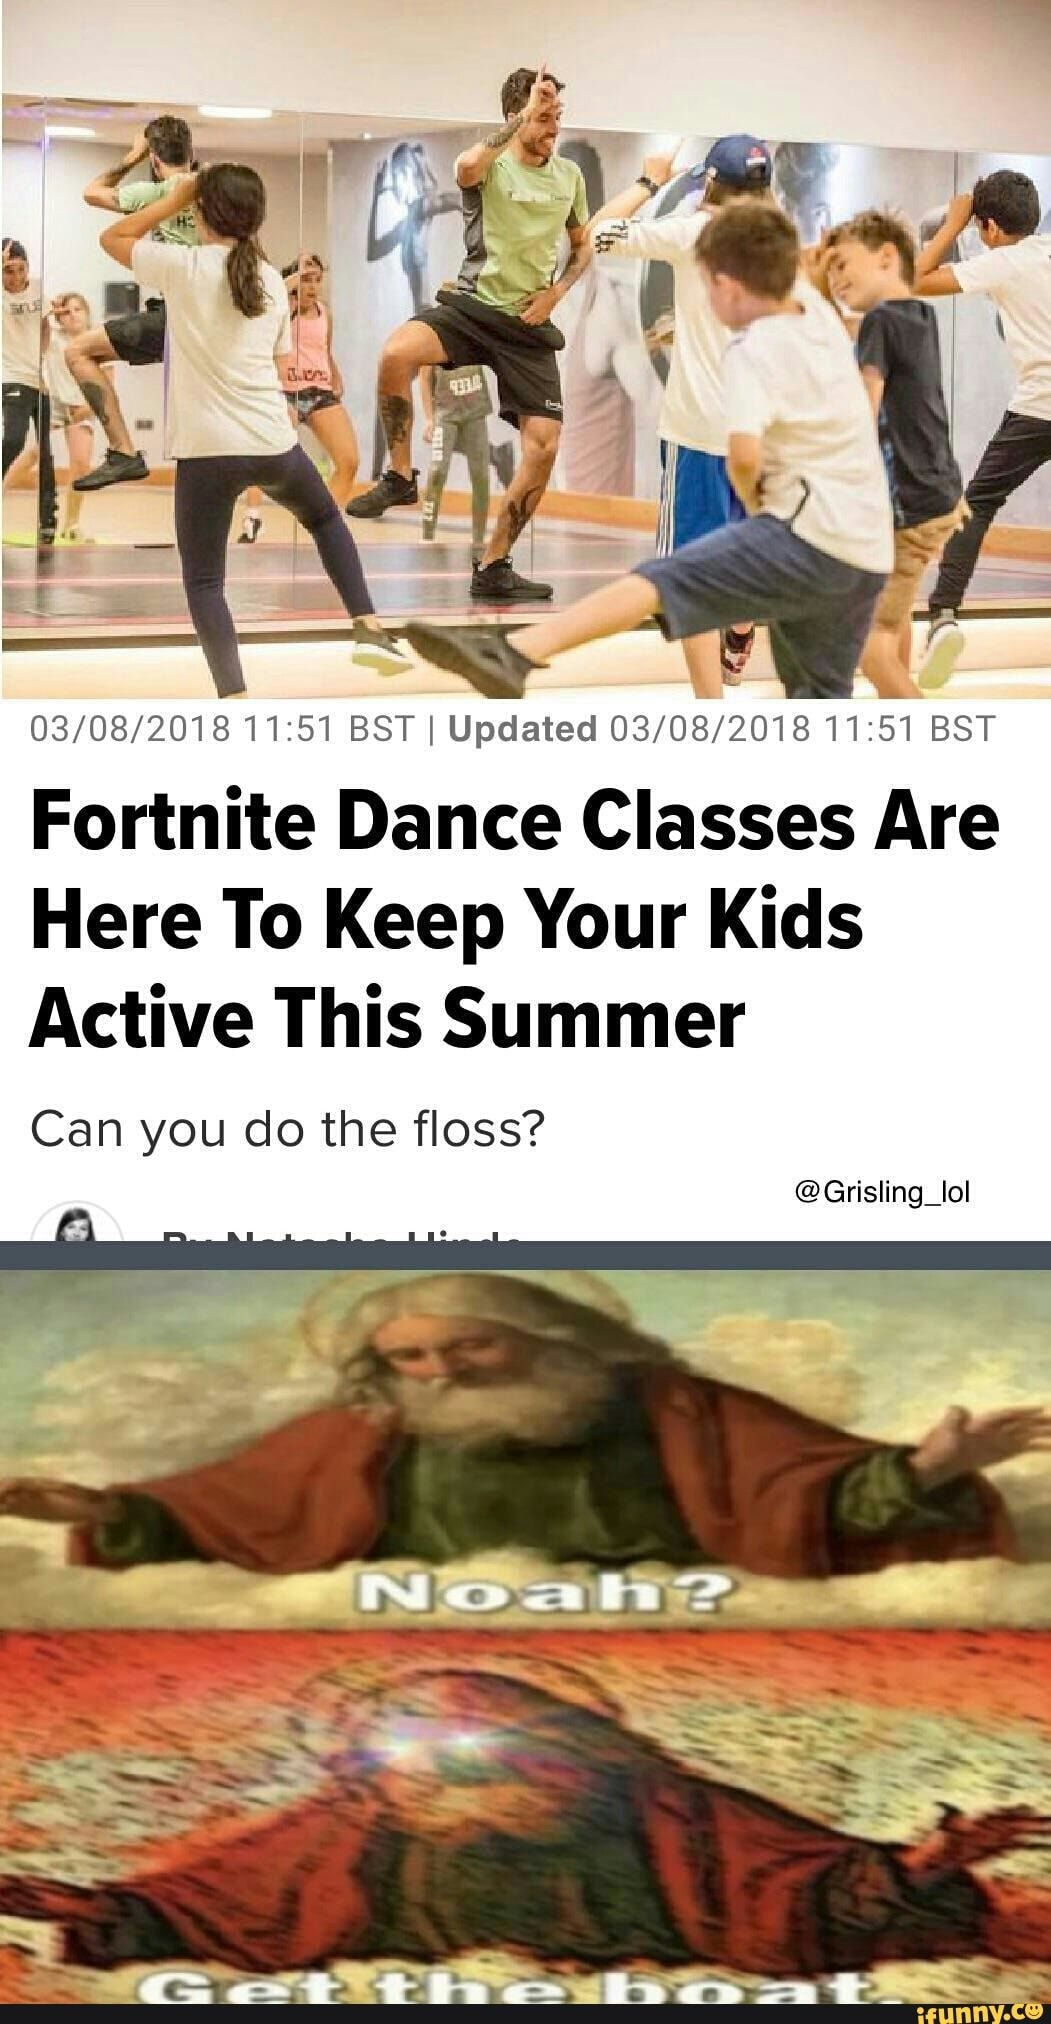 03 08 201811i51 Bst I Updated 03 08 201811i51 Bst Fortnite Dance Classes Are Here To Keep Your Kids Active This Summer Ifunny Really Funny Memes Funny Memes Stupid Funny Memes